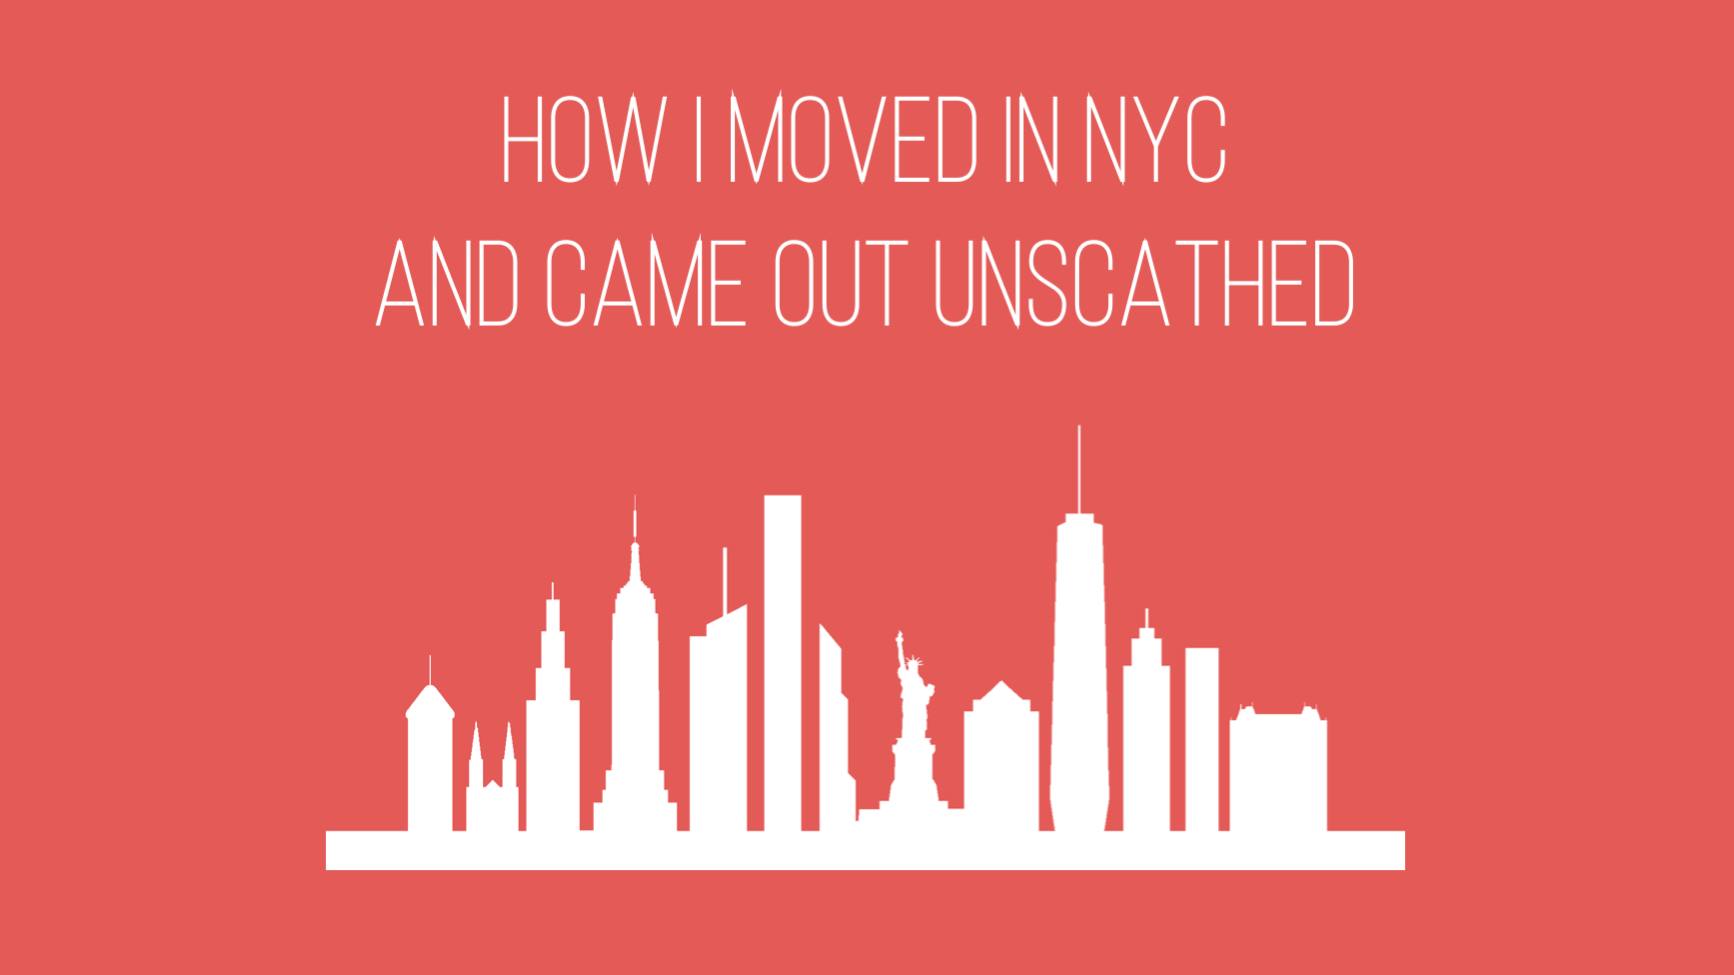 How I moved in NYC and came out unscathed